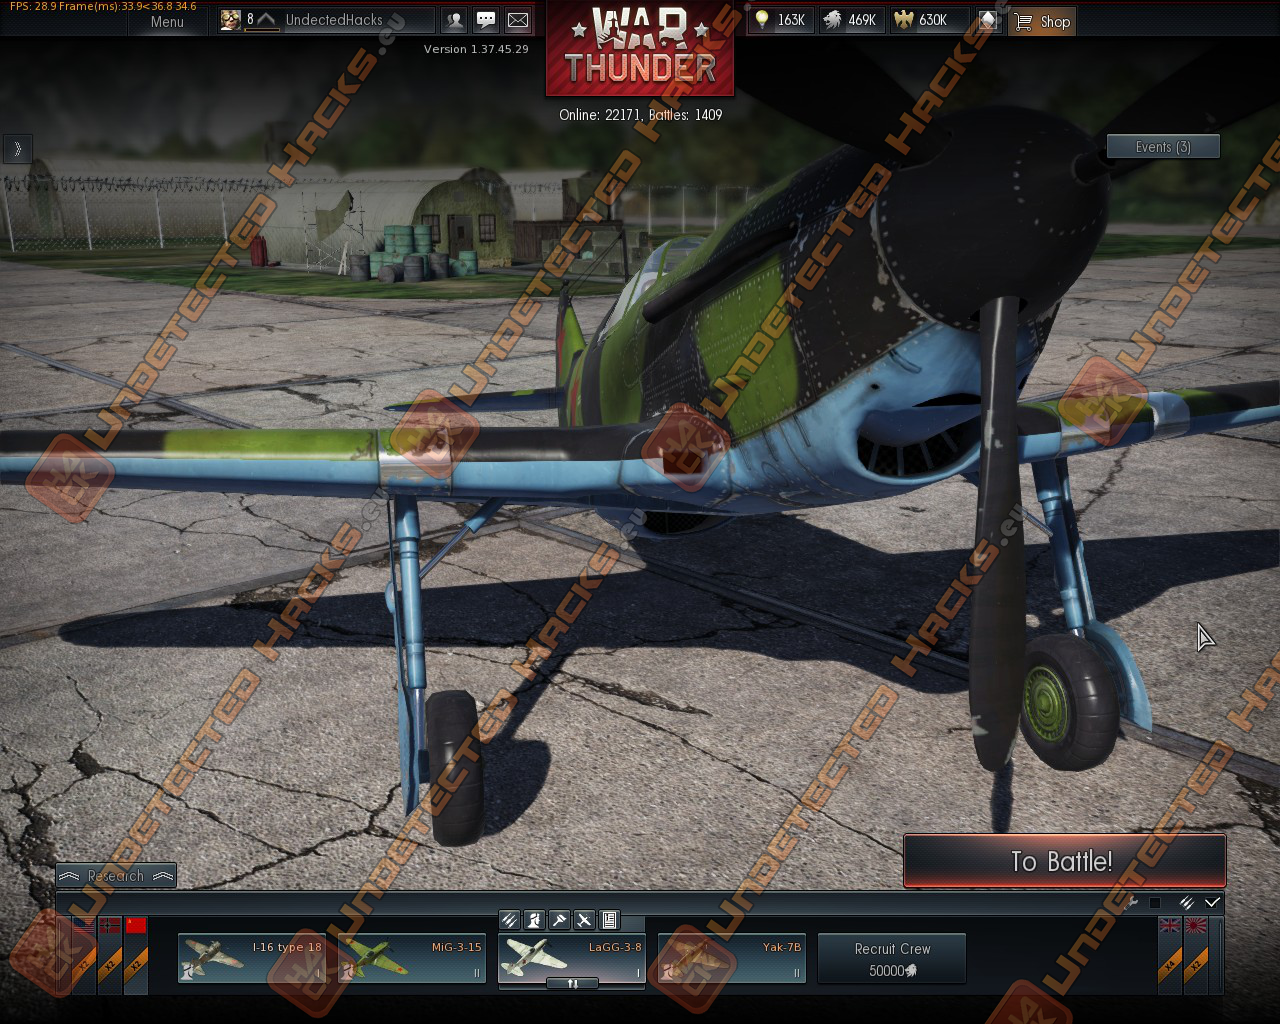 War Thunder Hack version 1.39